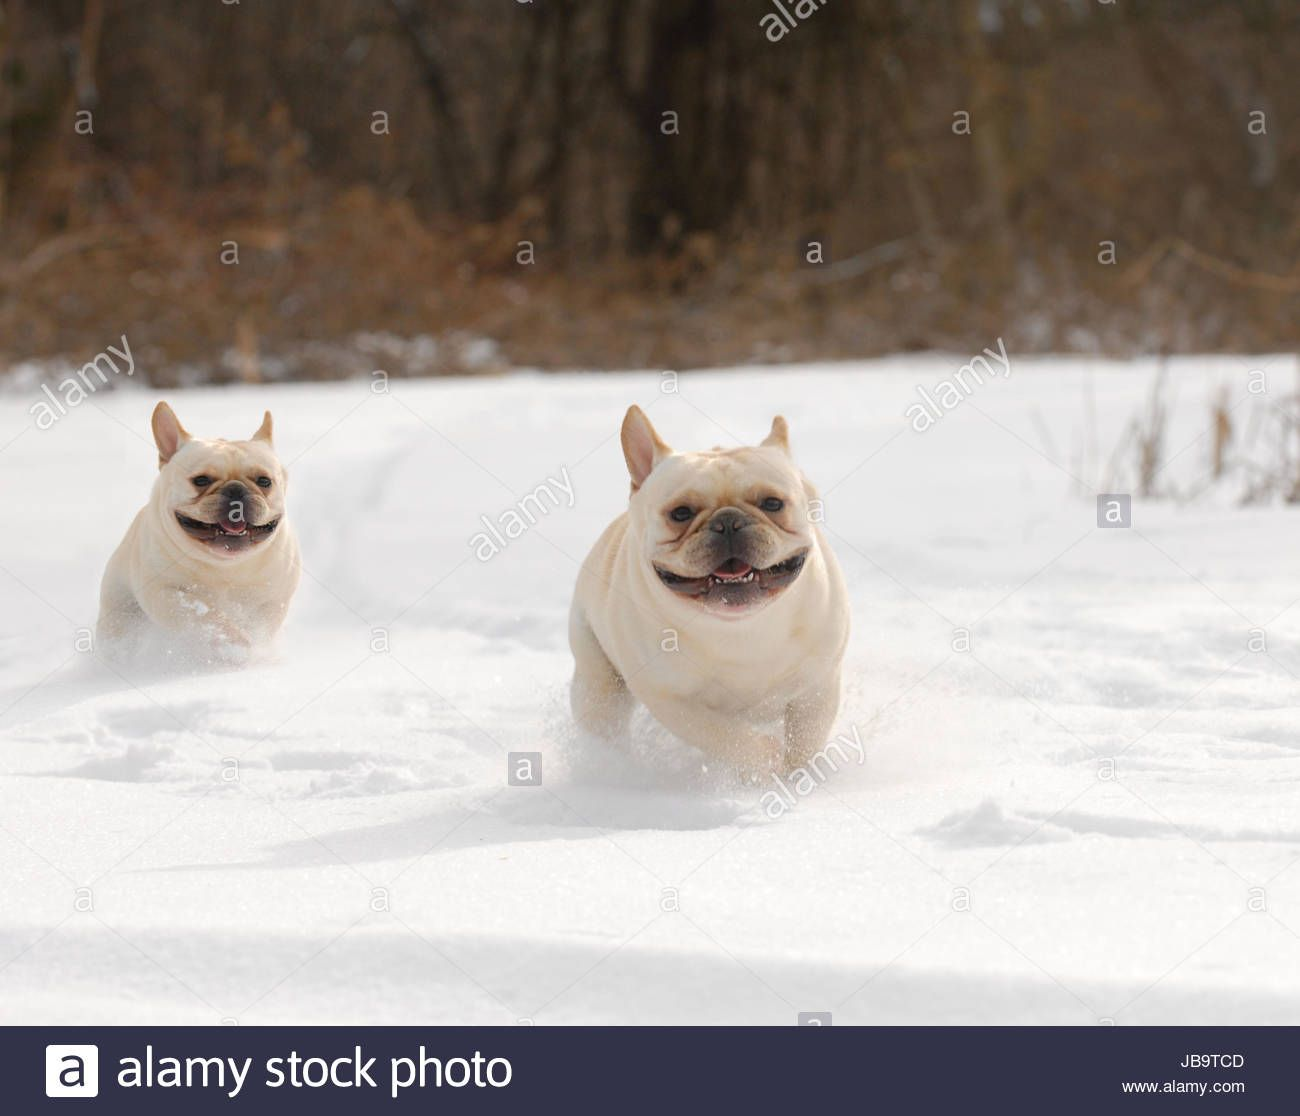 Download This Stock Image Dogs In Winter Two French Bulldog